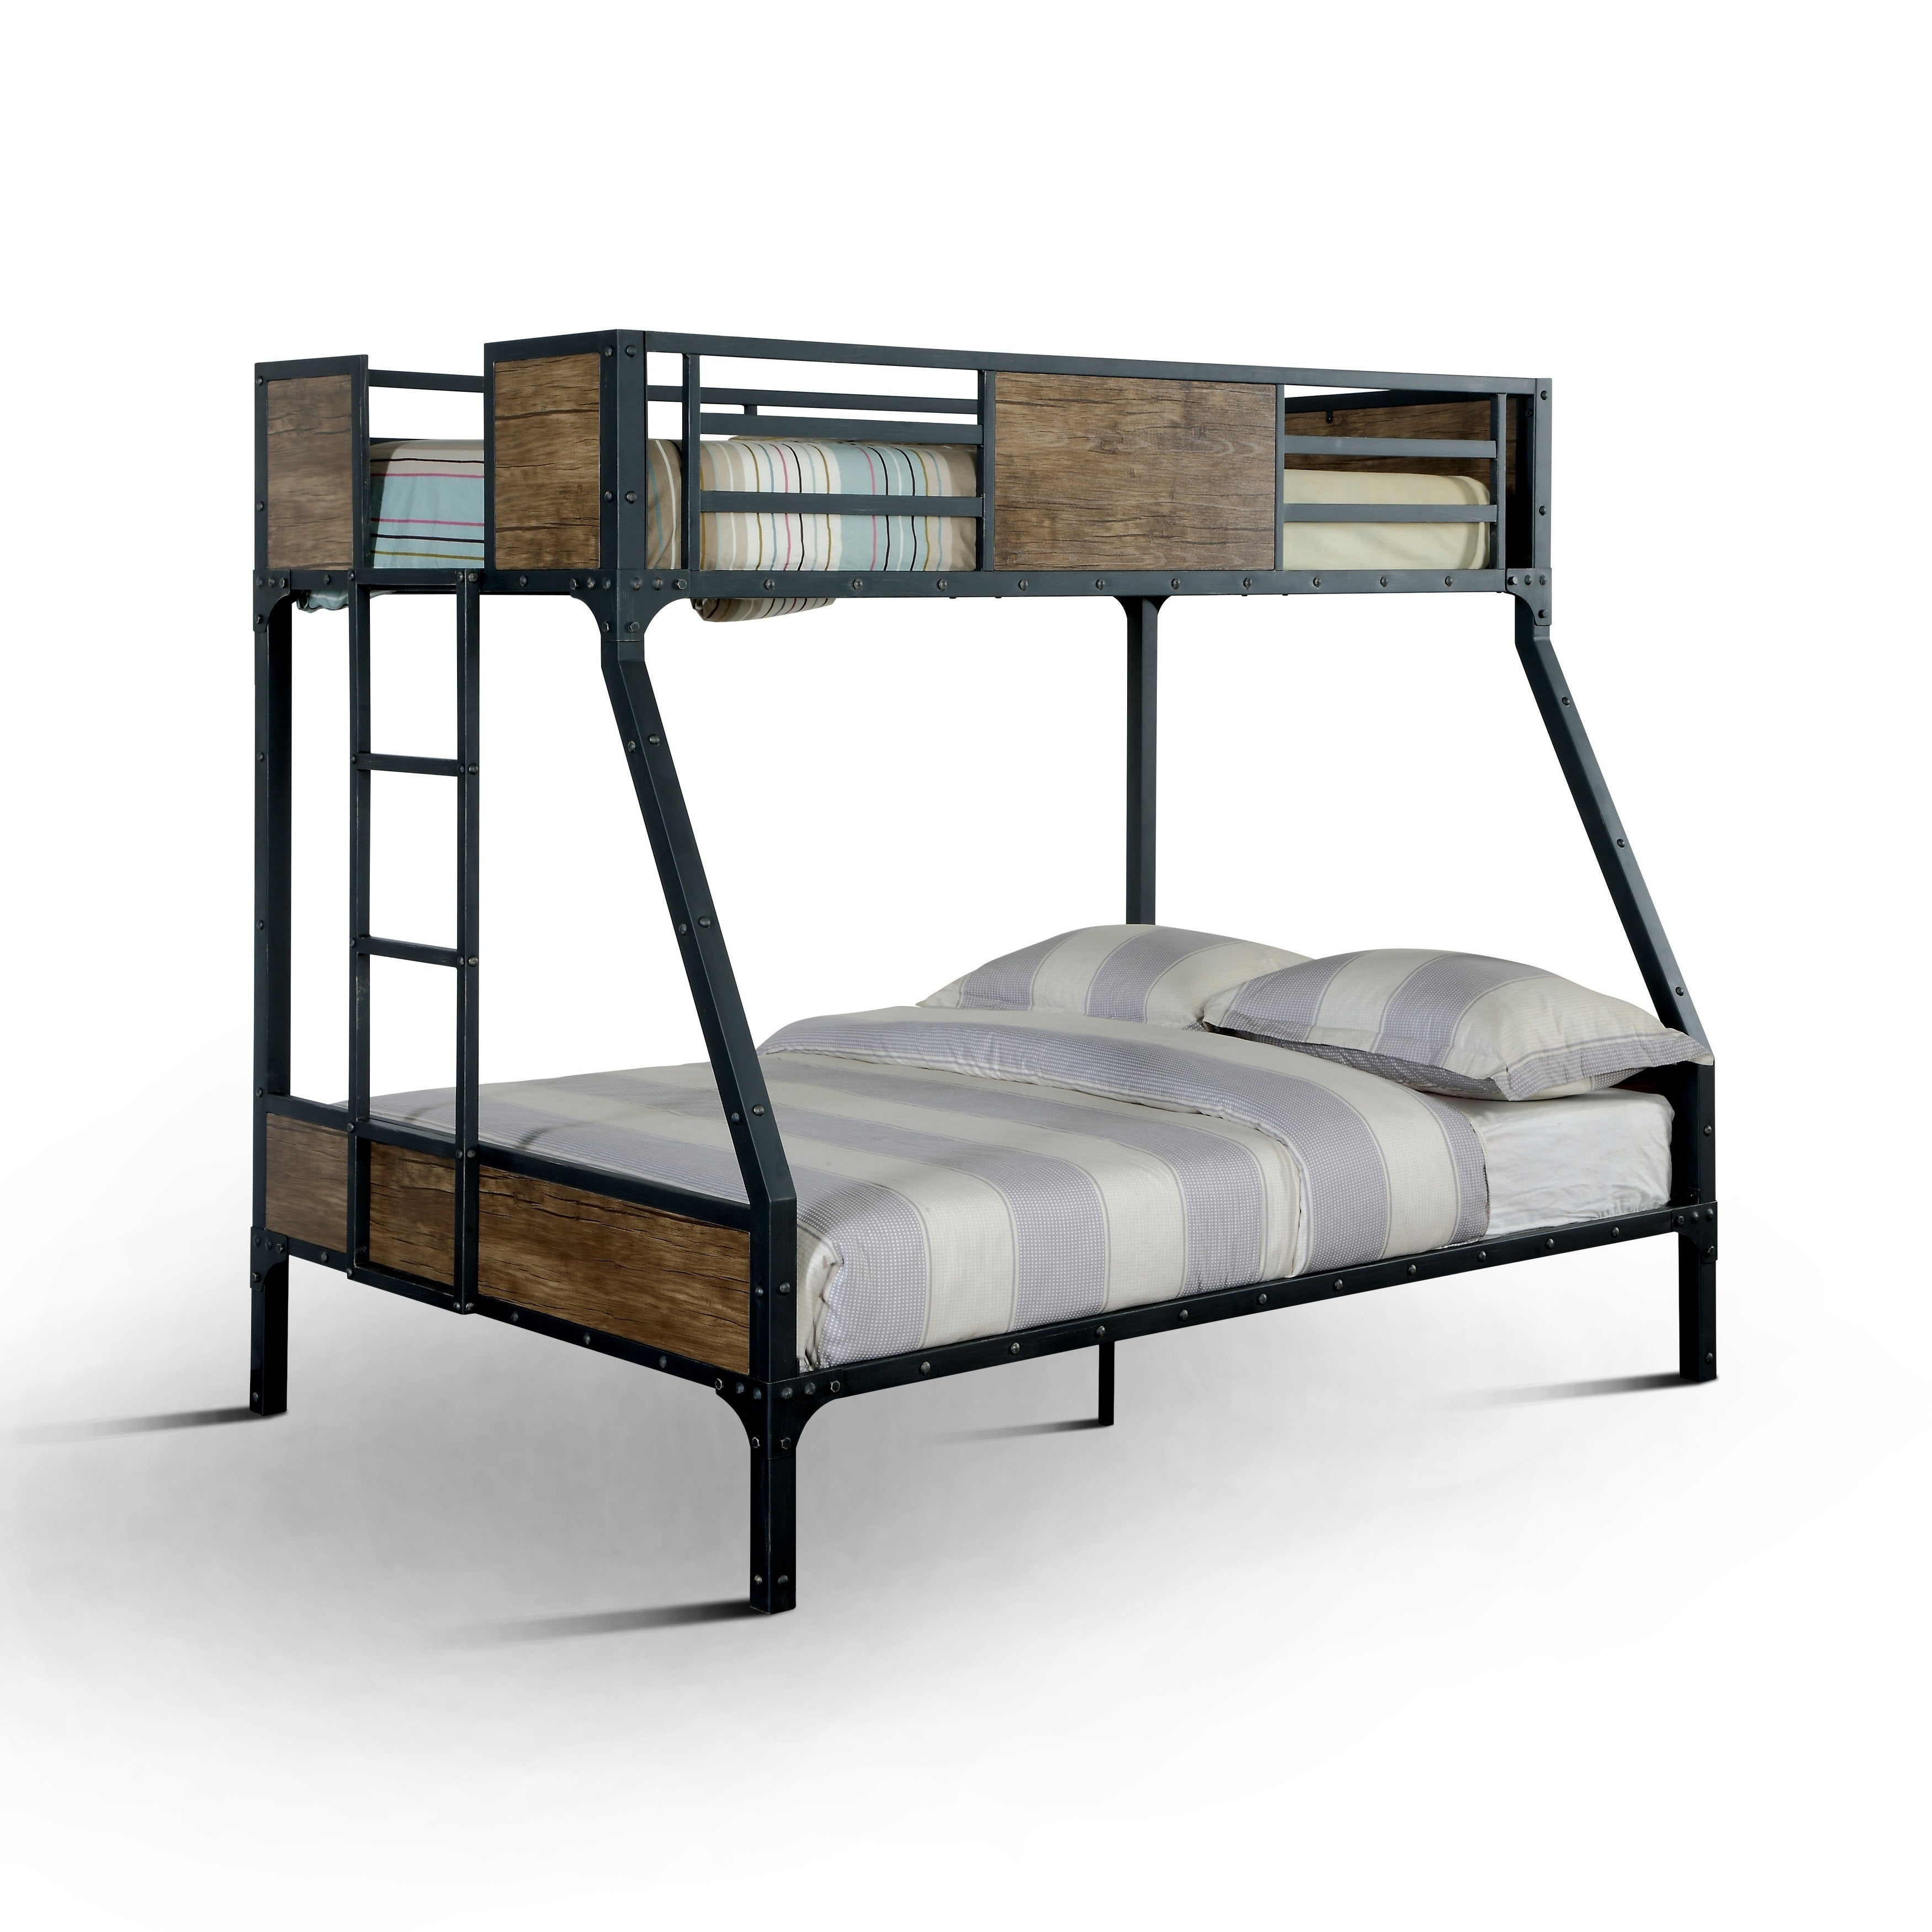 Shop Furniture Of America Markain Industrial Metal Bunk Bed On